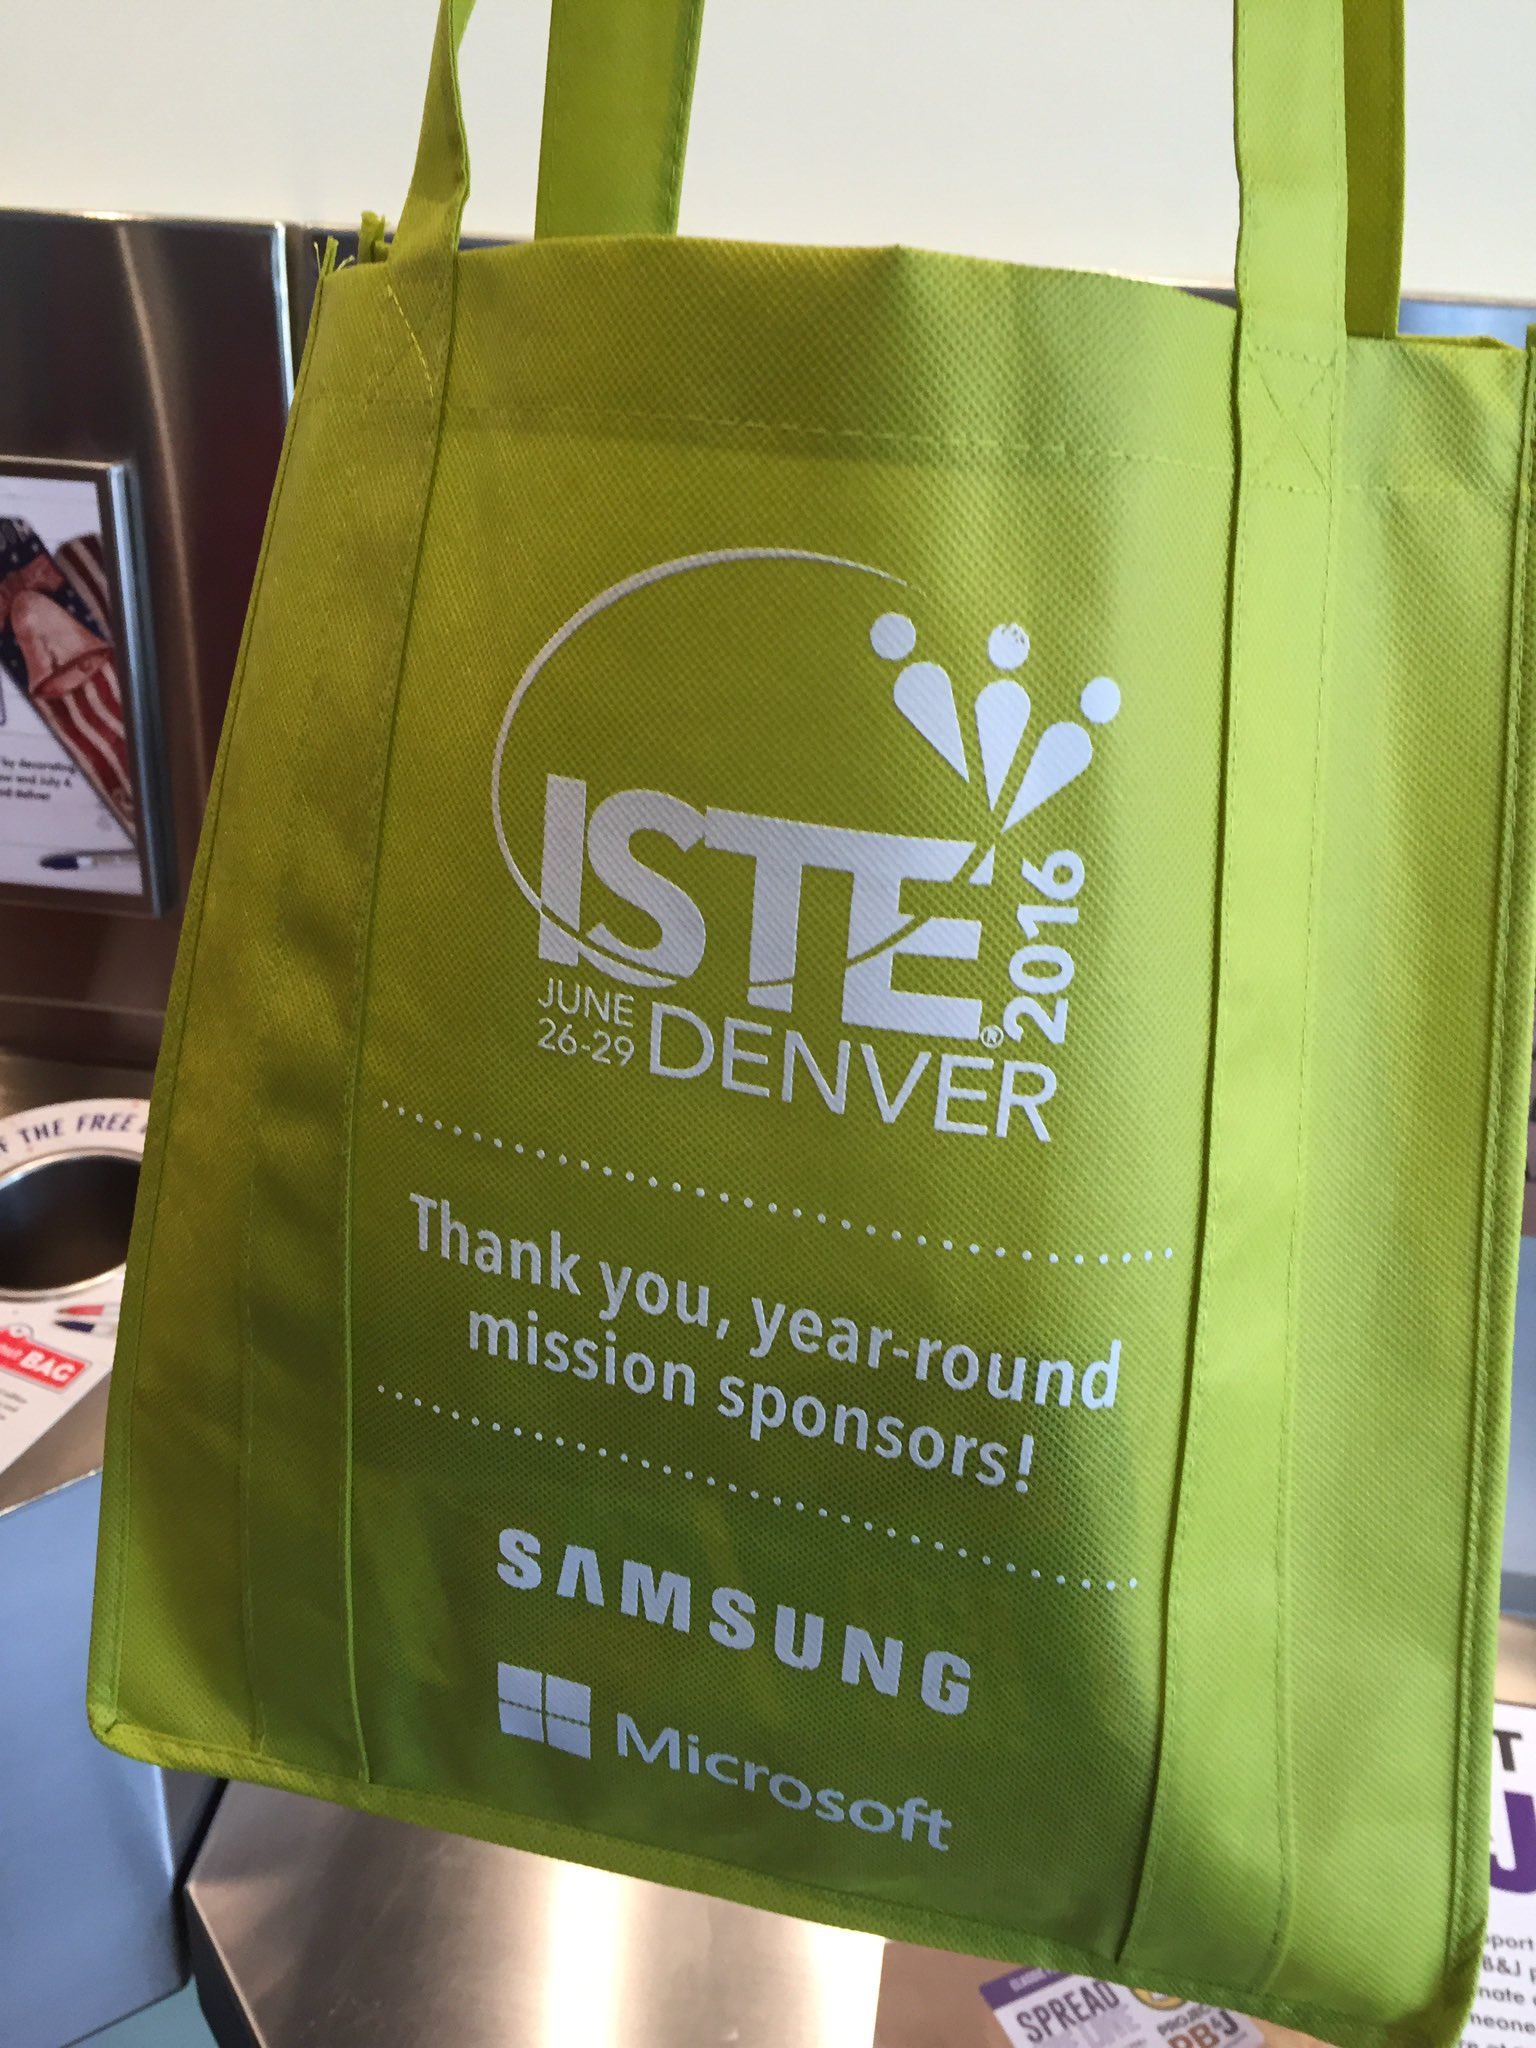 Excited to learn new ways to support S education through technology this week! #fcpsiste @fcpsoit #ISTE2016 https://t.co/dJqCh4RPlu